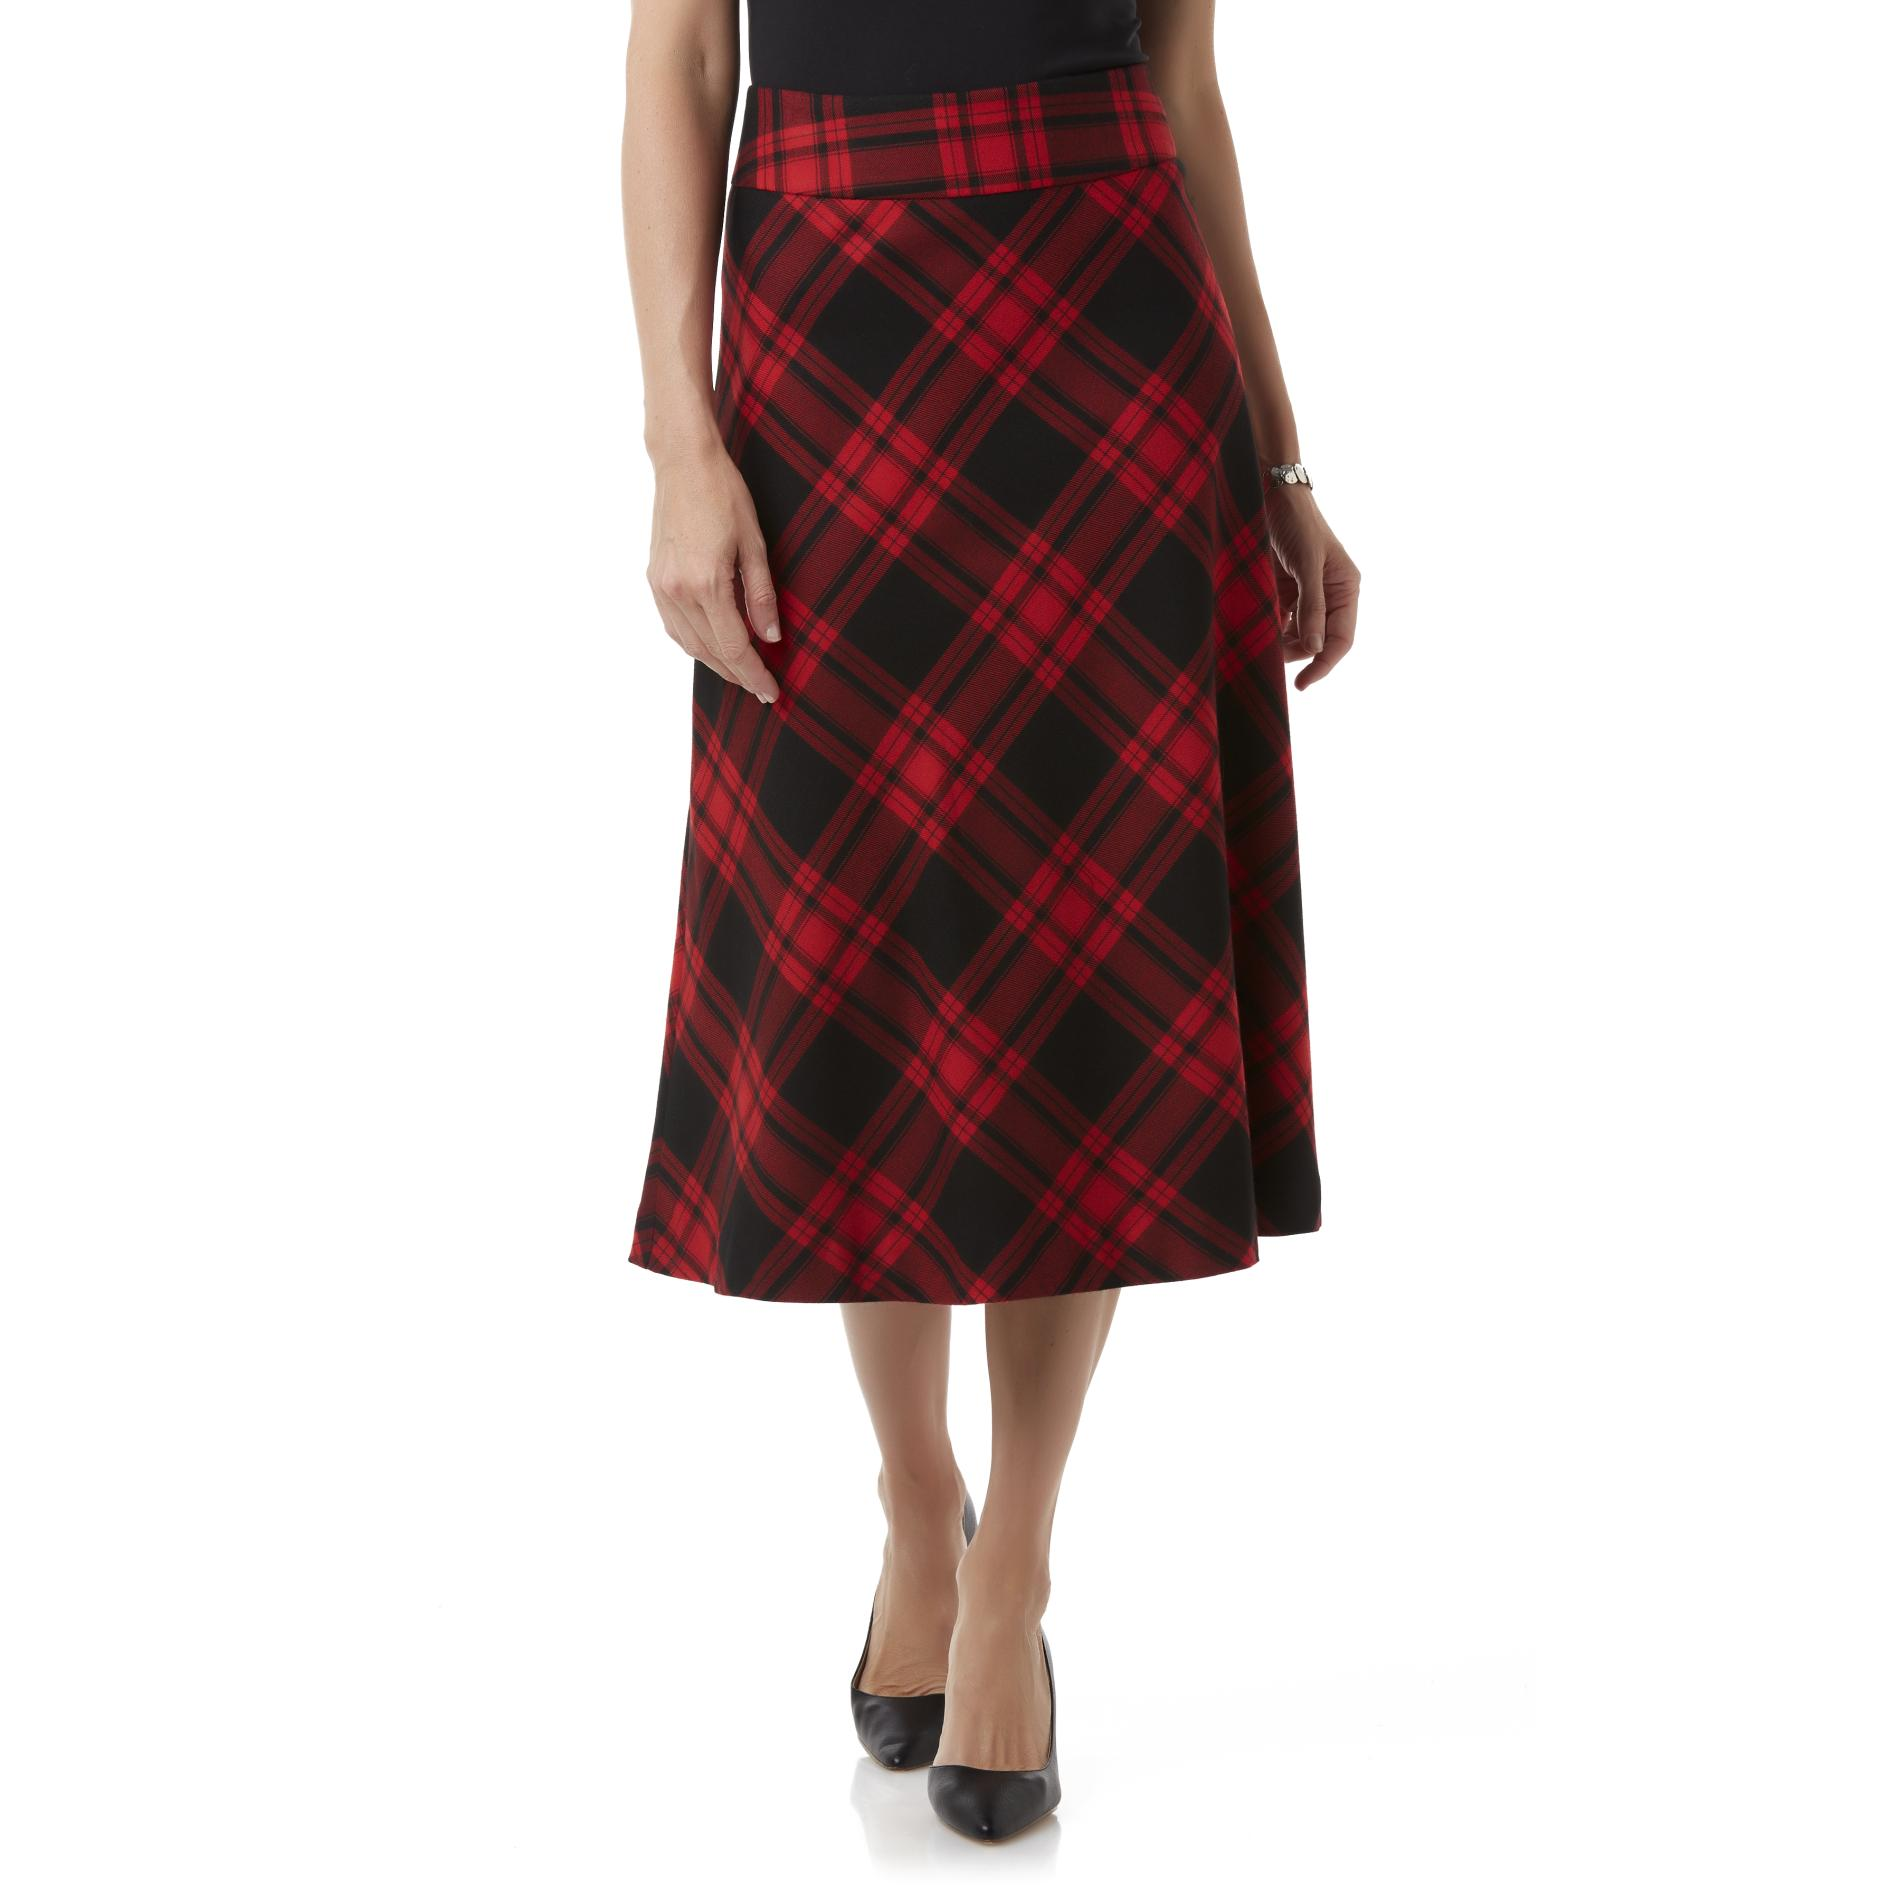 School Skirts Kmart Side Zipper Skirt Kmart